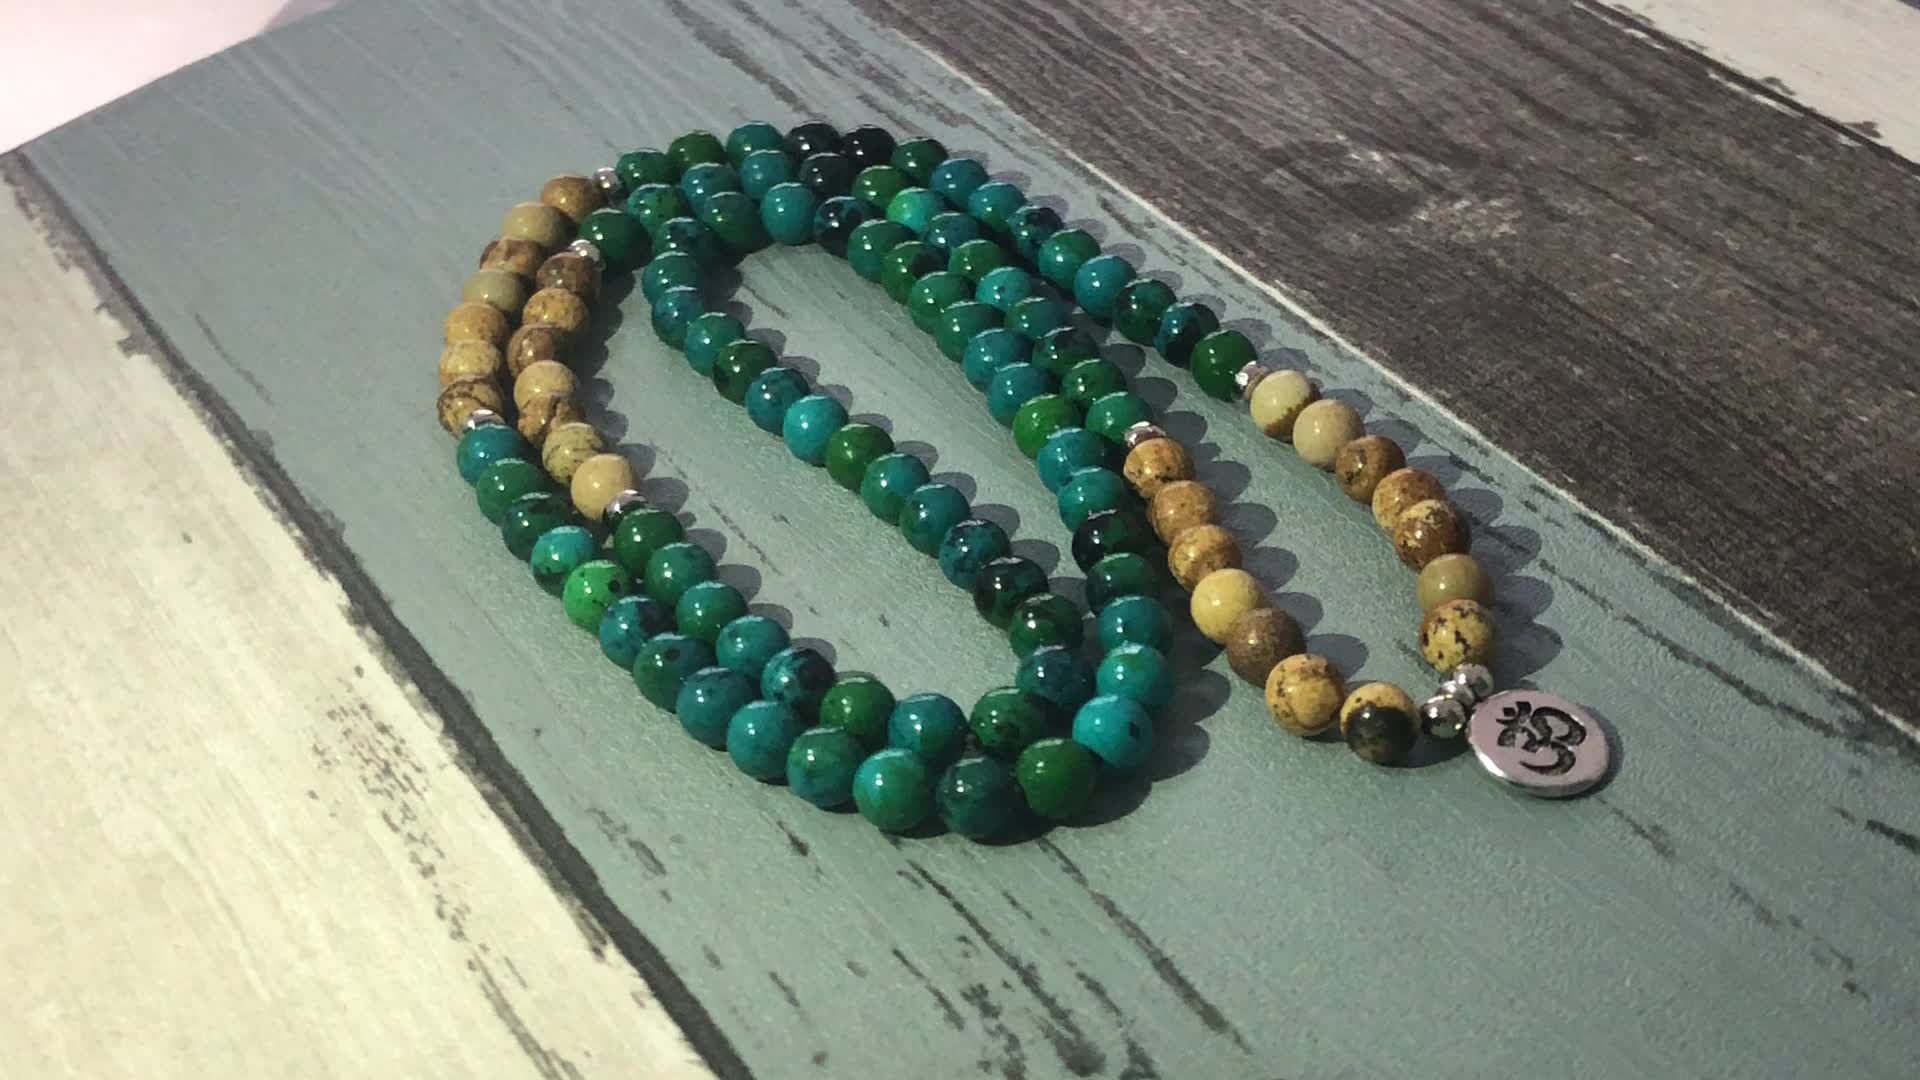 SN0953 Yoga Charm 108 Prayer Beads Wrist Green aventurine wraps Bracelet For Unisex OM Mala Yoga Bracelet